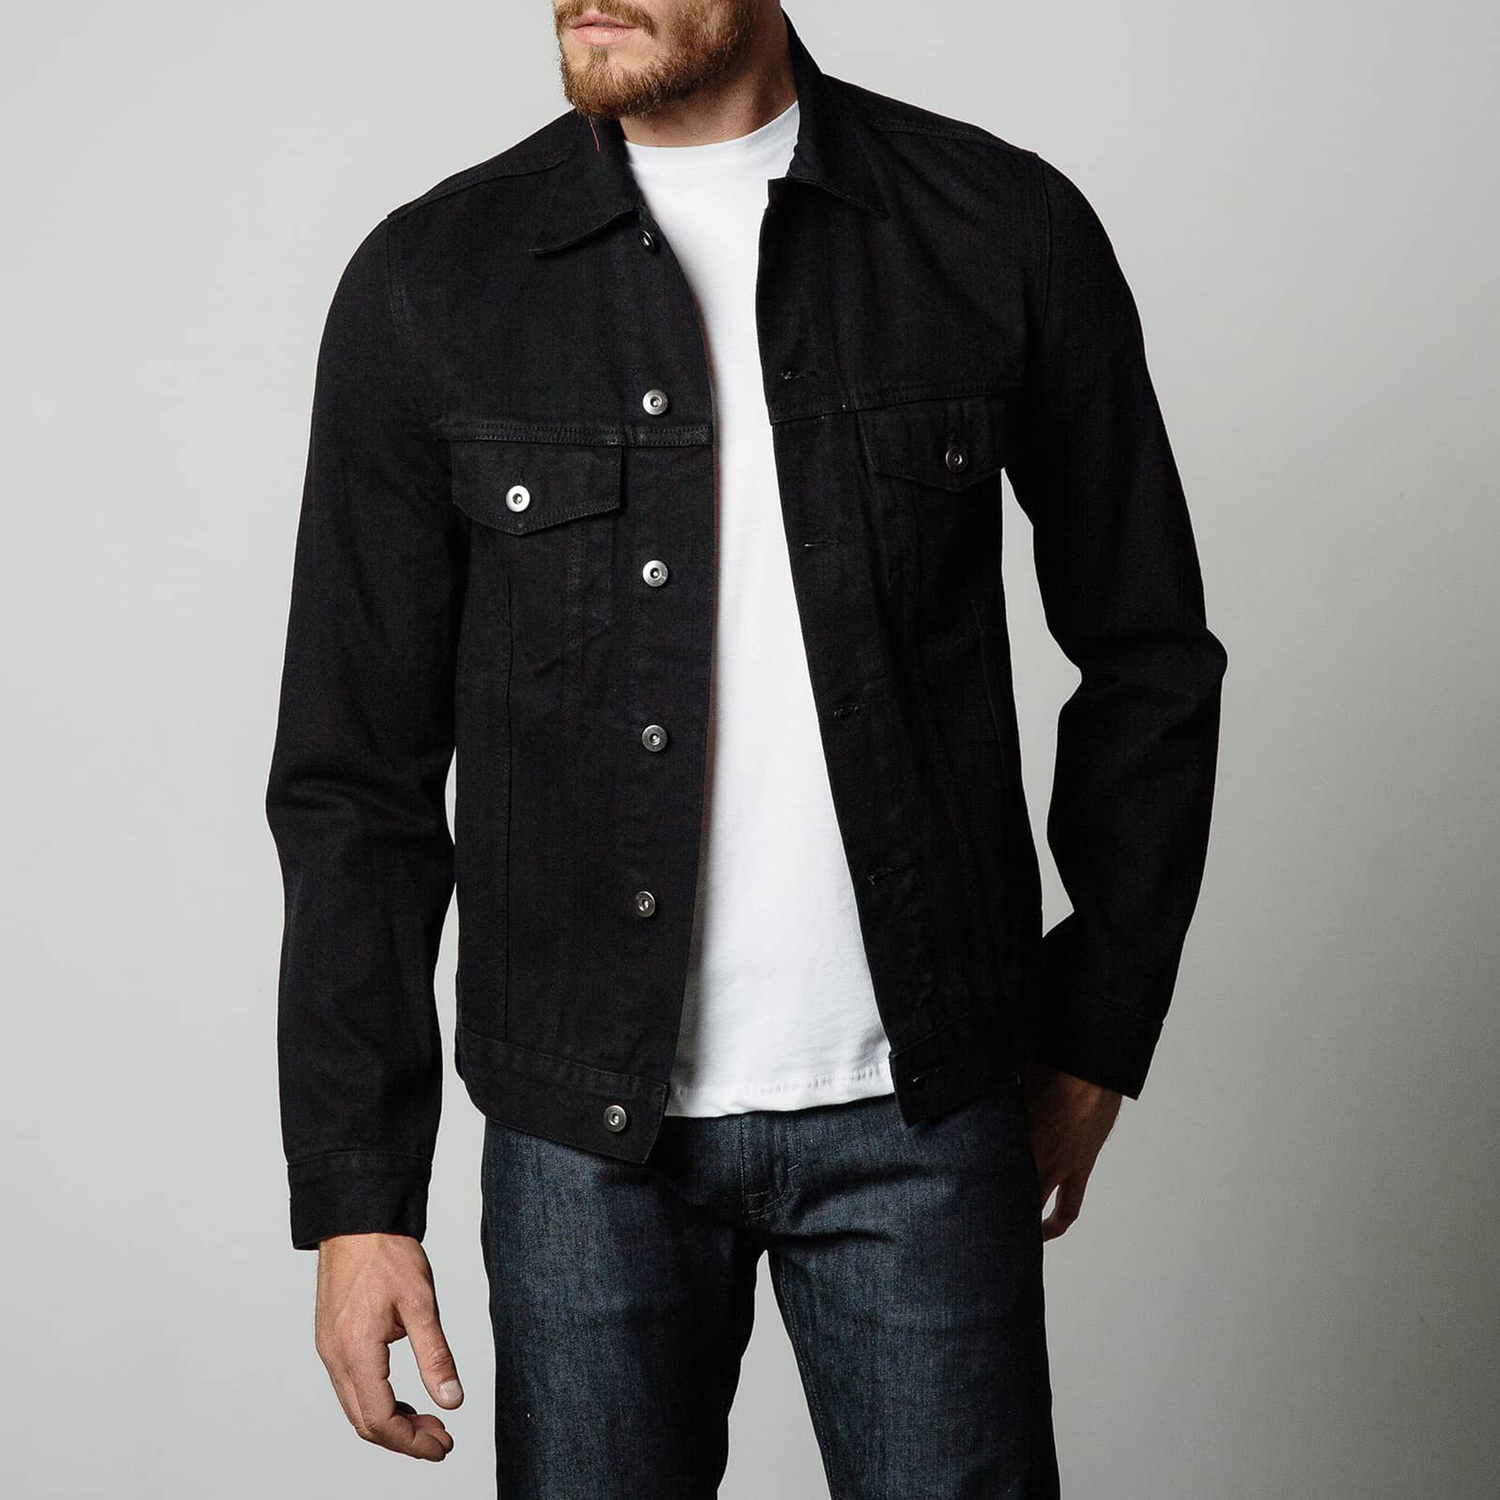 Free shipping BOTH ways on Jean Jackets, Men, from our vast selection of styles. Fast delivery, and 24/7/ real-person service with a smile. Click or call